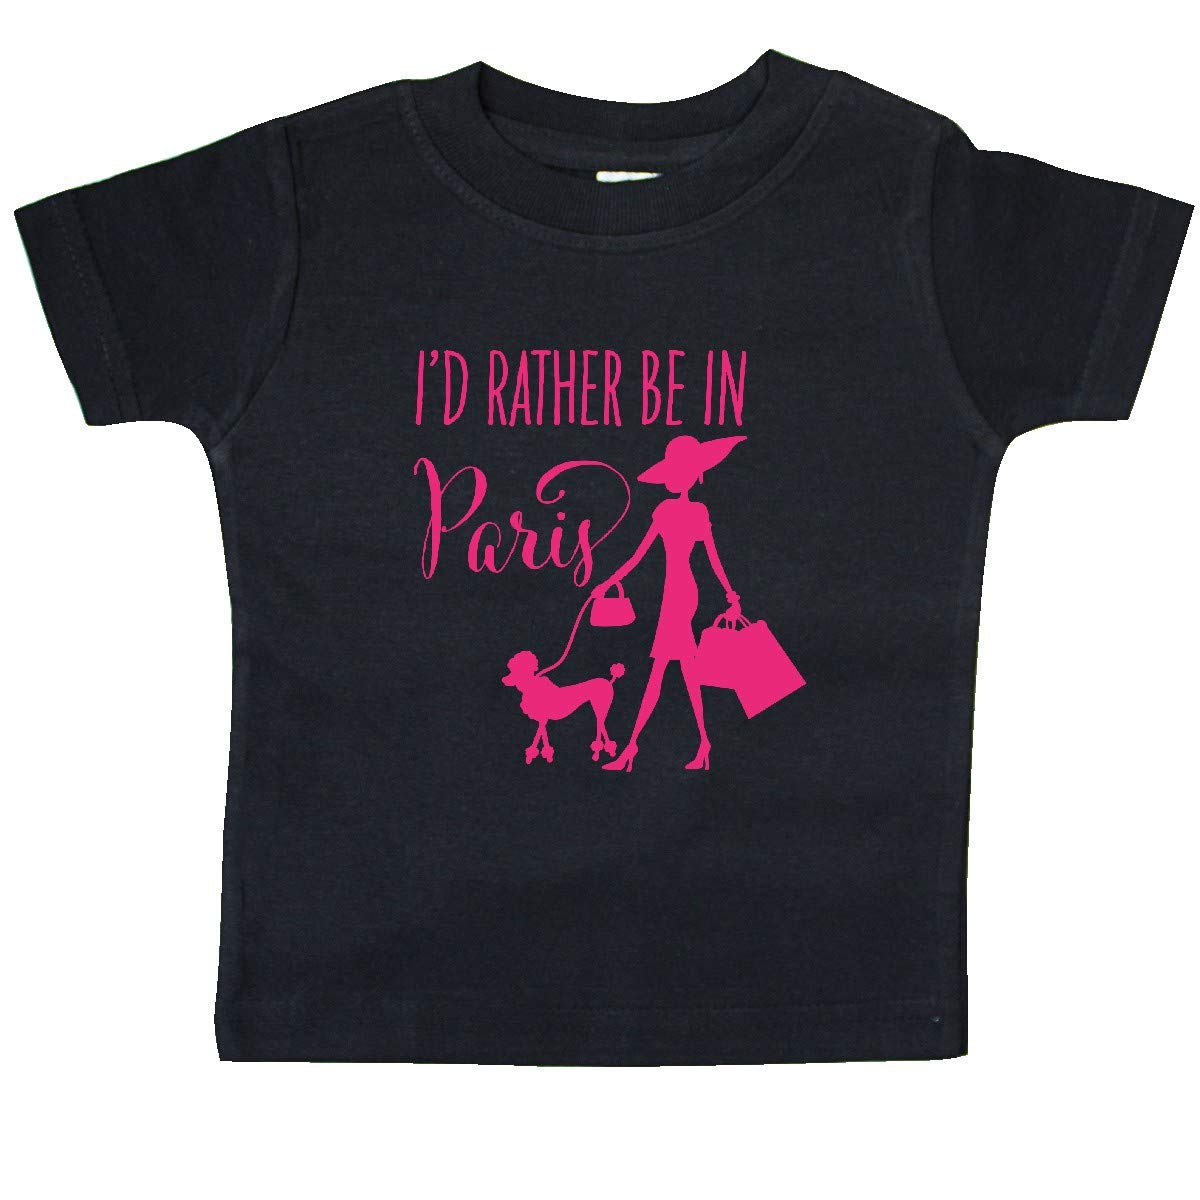 Shopping and Travel in Pink Baby T-Shirt inktastic Id Rather Be in Paris